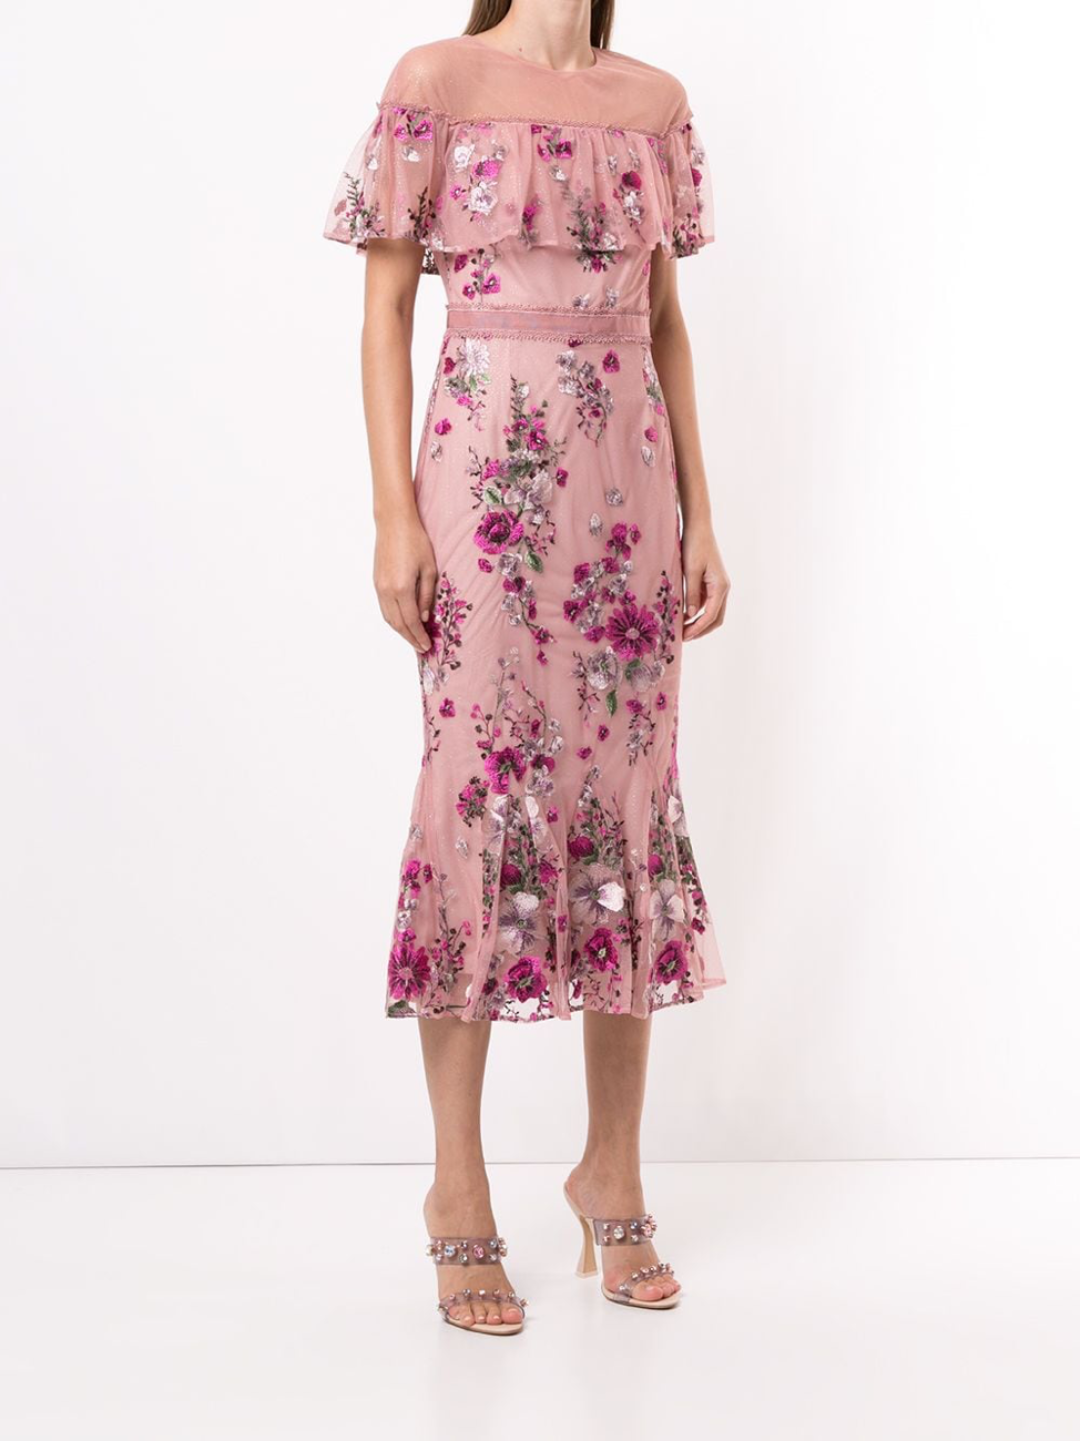 Off-Shoulder Metallic Floral Cocktail Dress